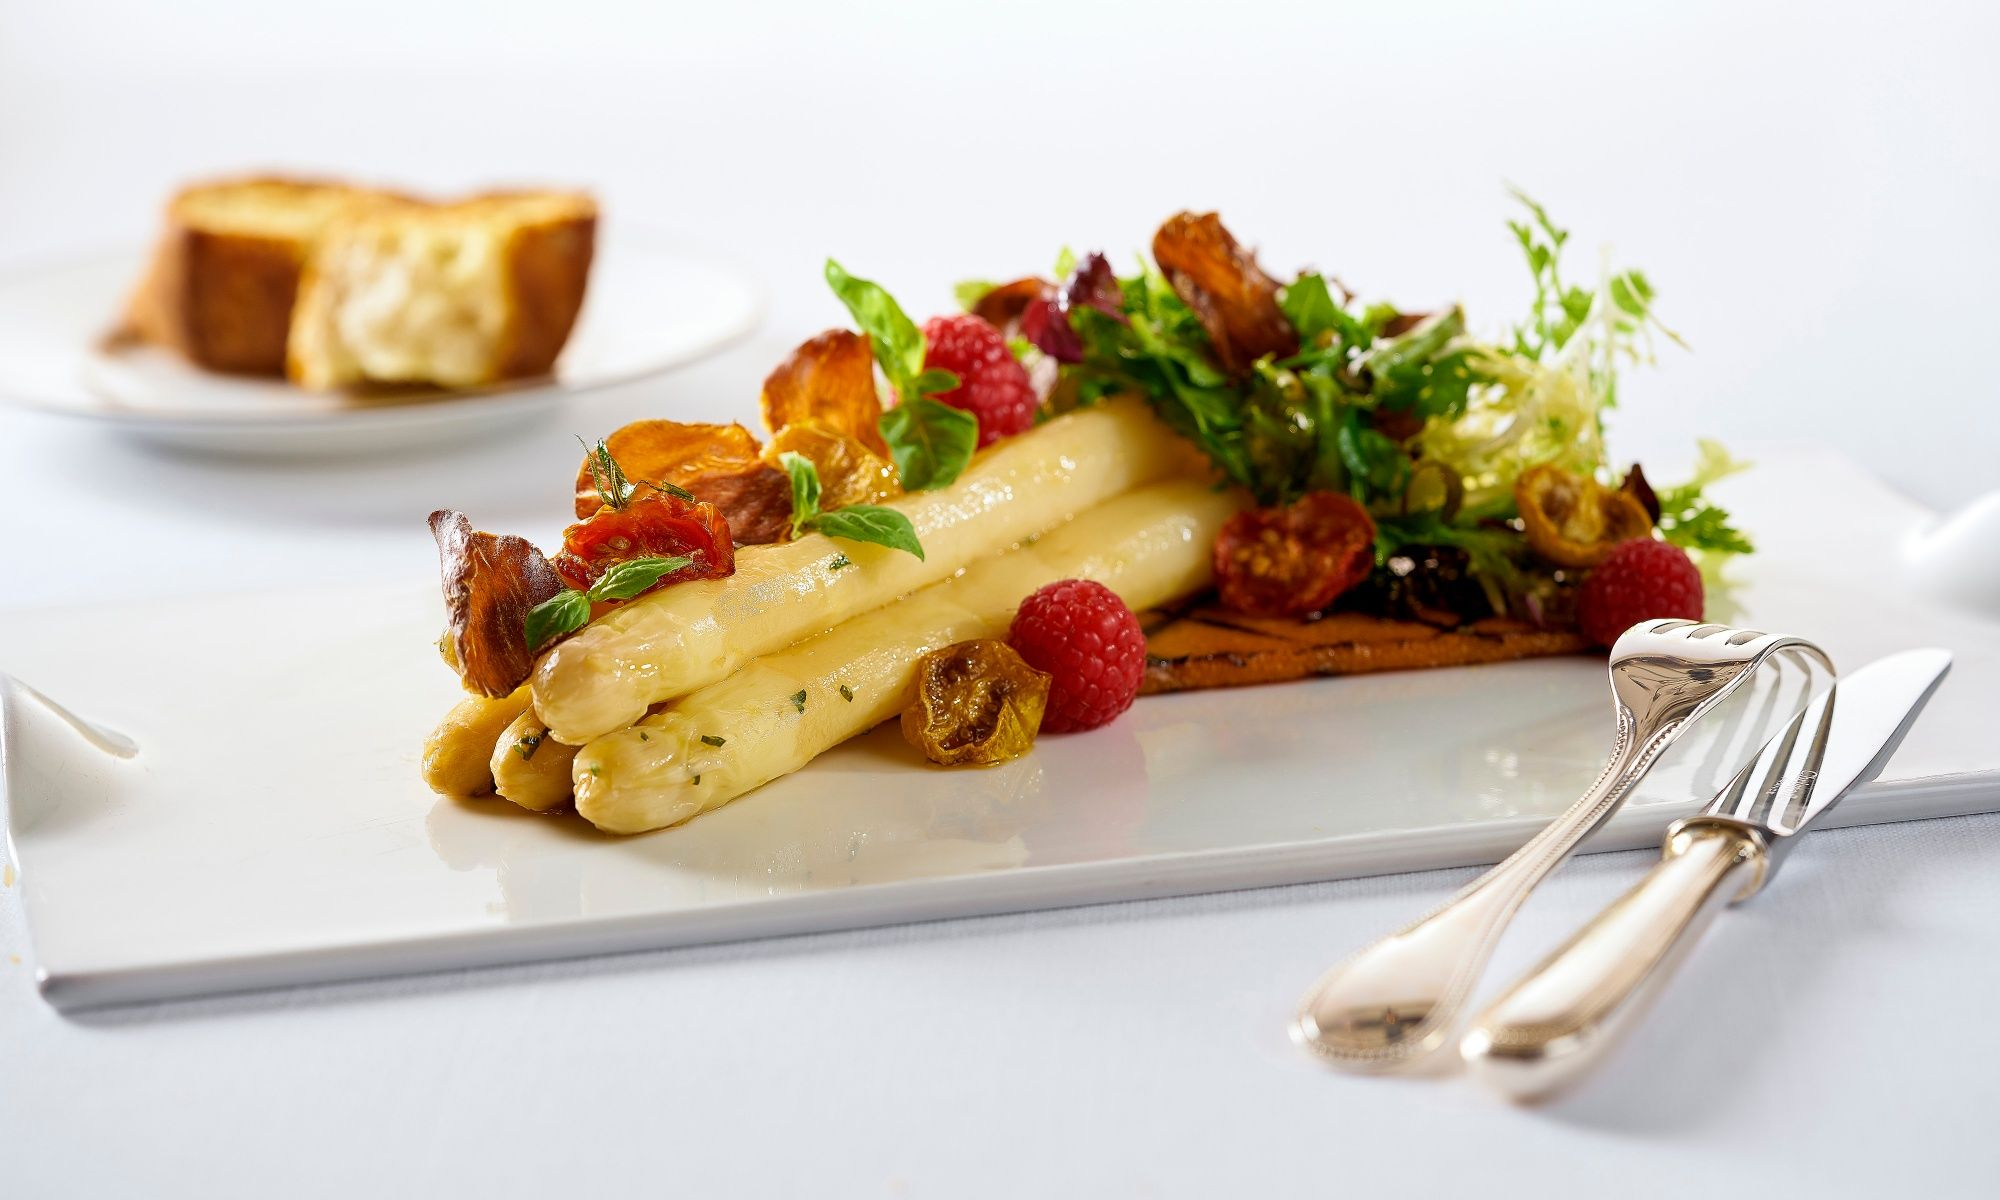 Hugo's Presents White Asparagus Delights From Germany